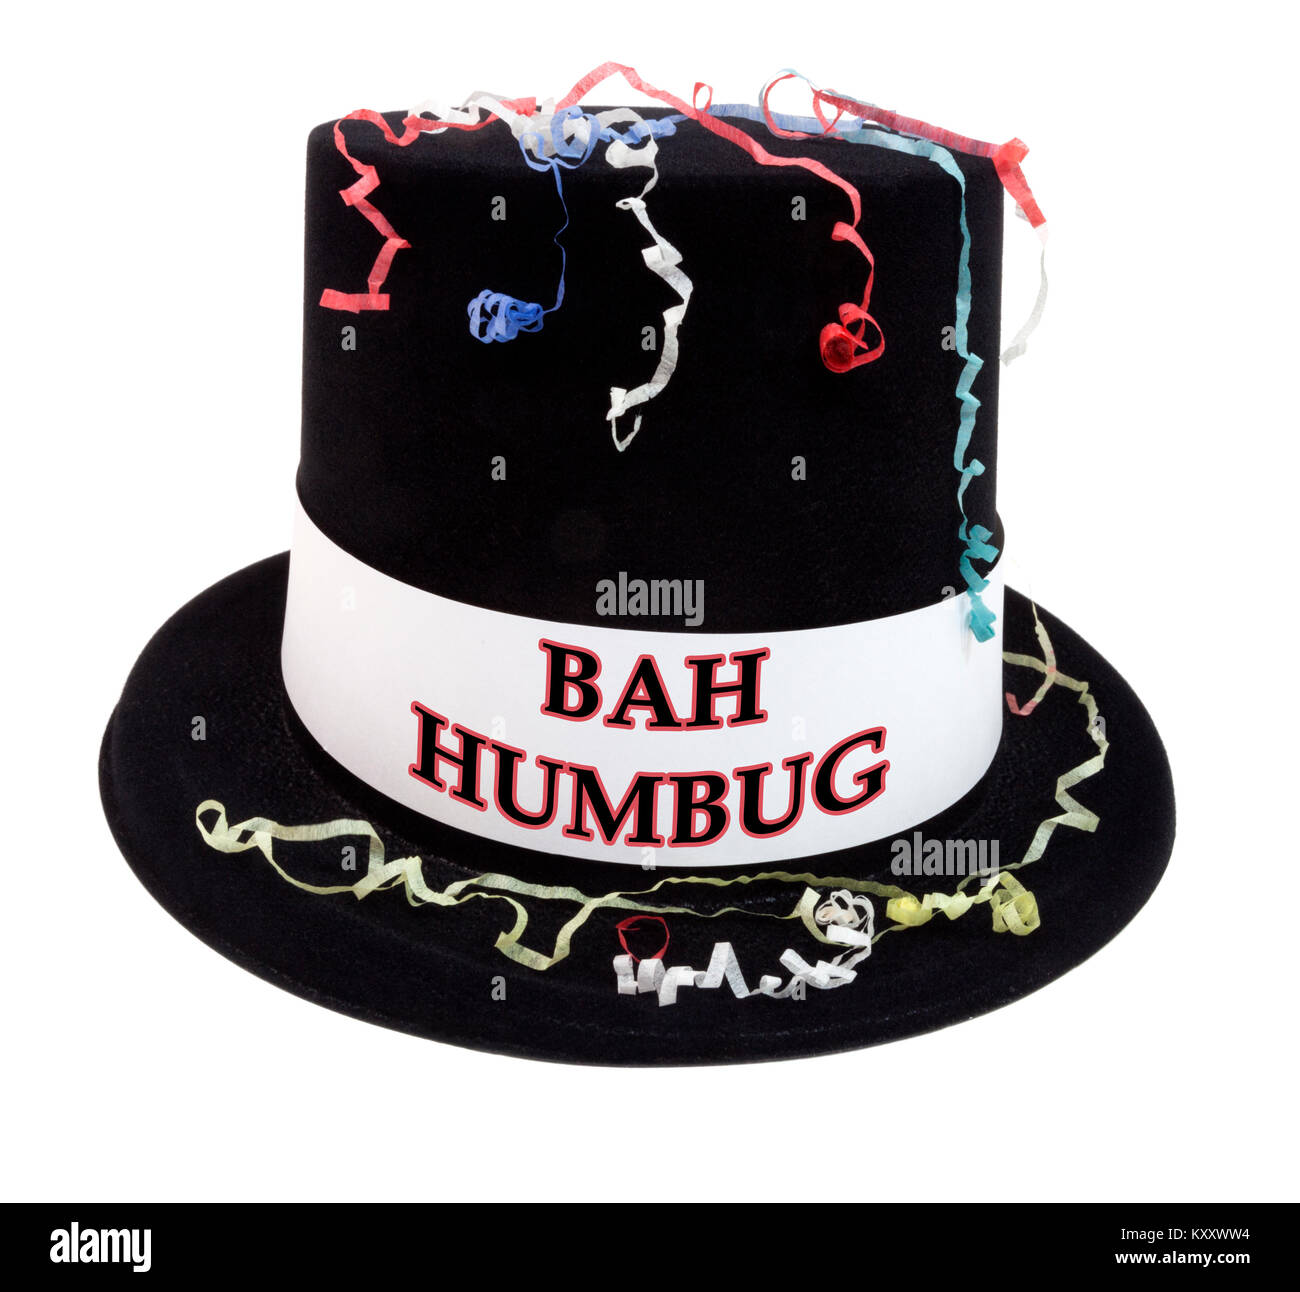 e67903f04f366 BAH HUMBUG costume celebration top hat with confetti streamers. Isolated. -  Stock Image